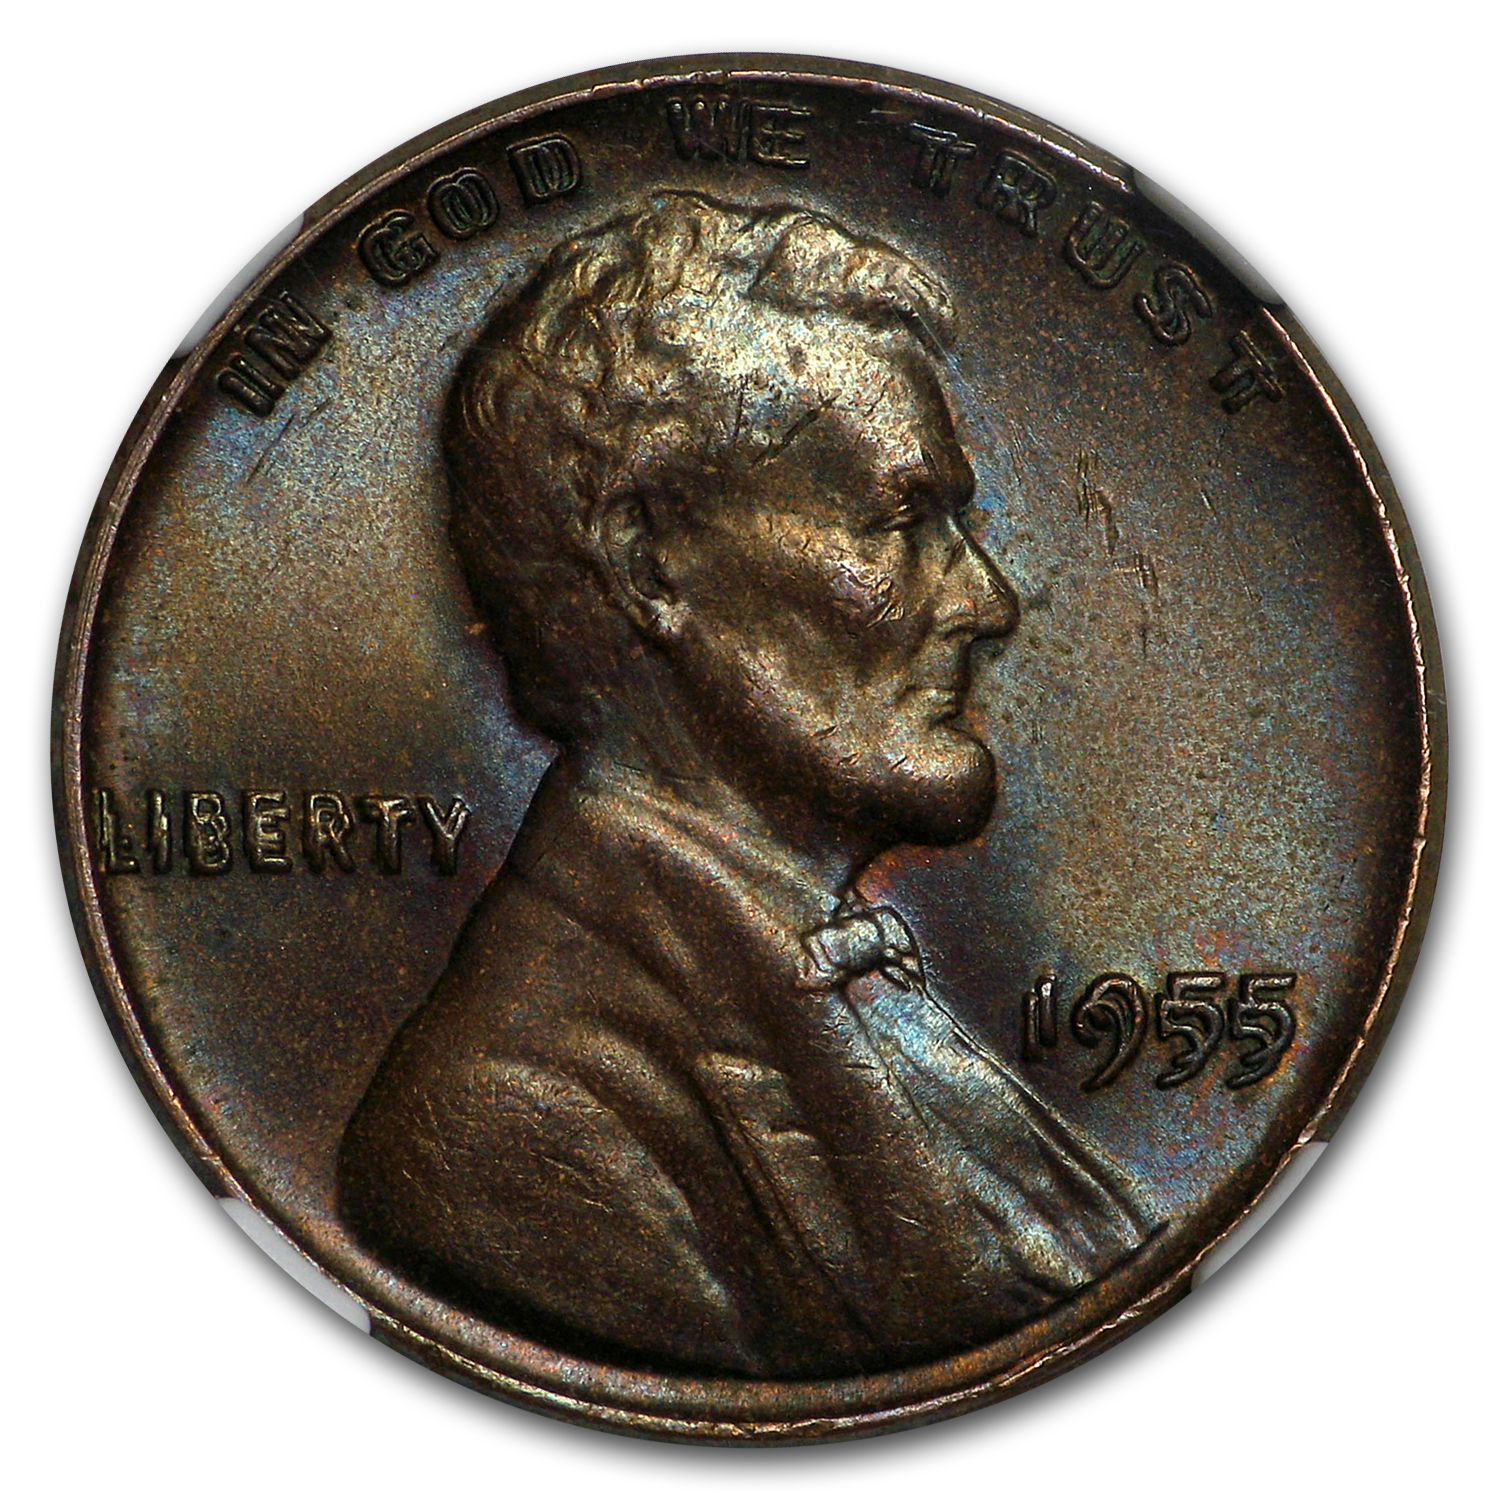 1955 Lincoln double die cent